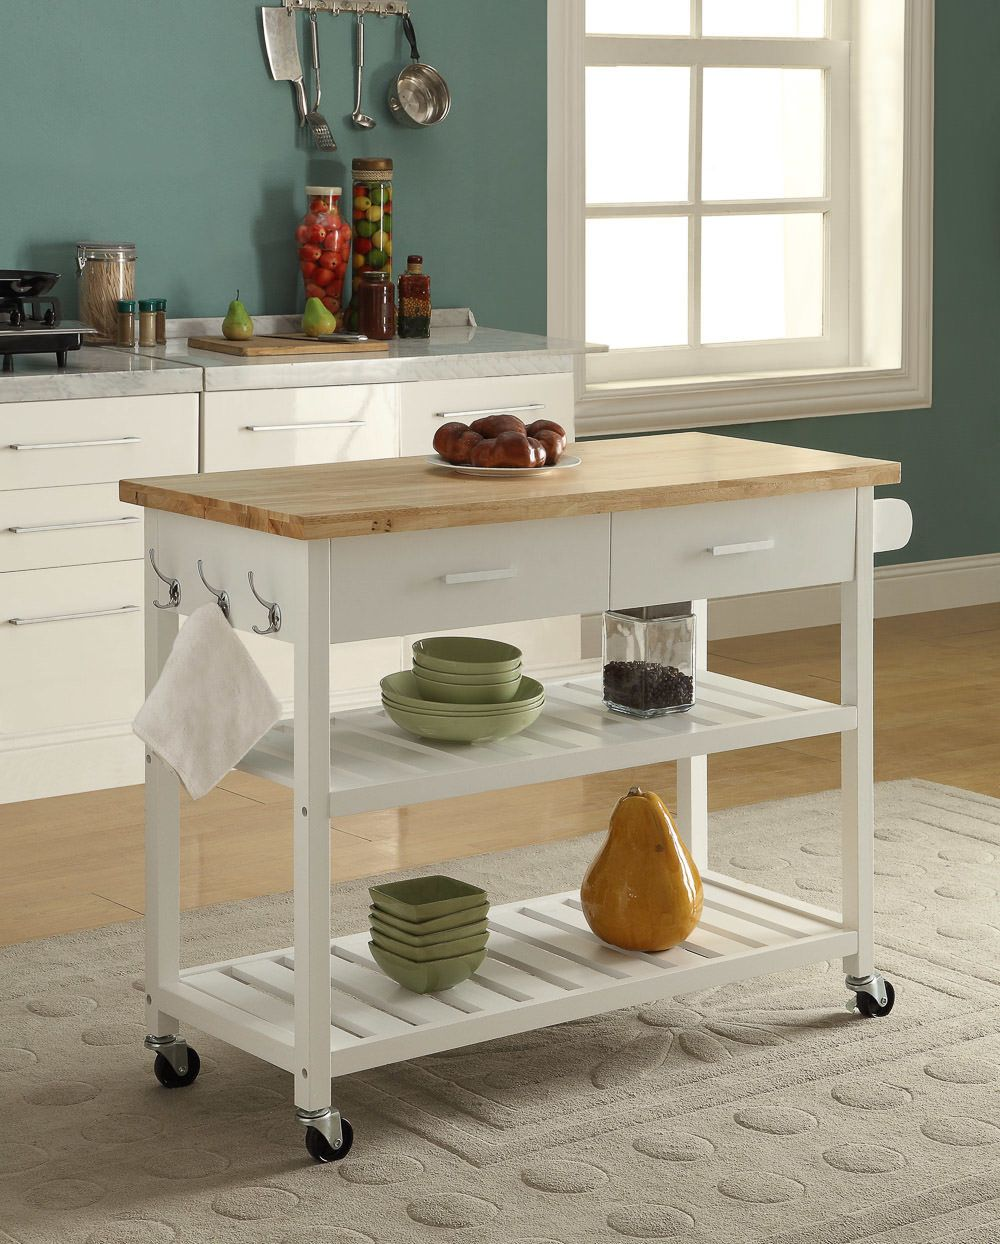 Kitchen Island Trolley - 2 Drawers 2 Tier - White and ...